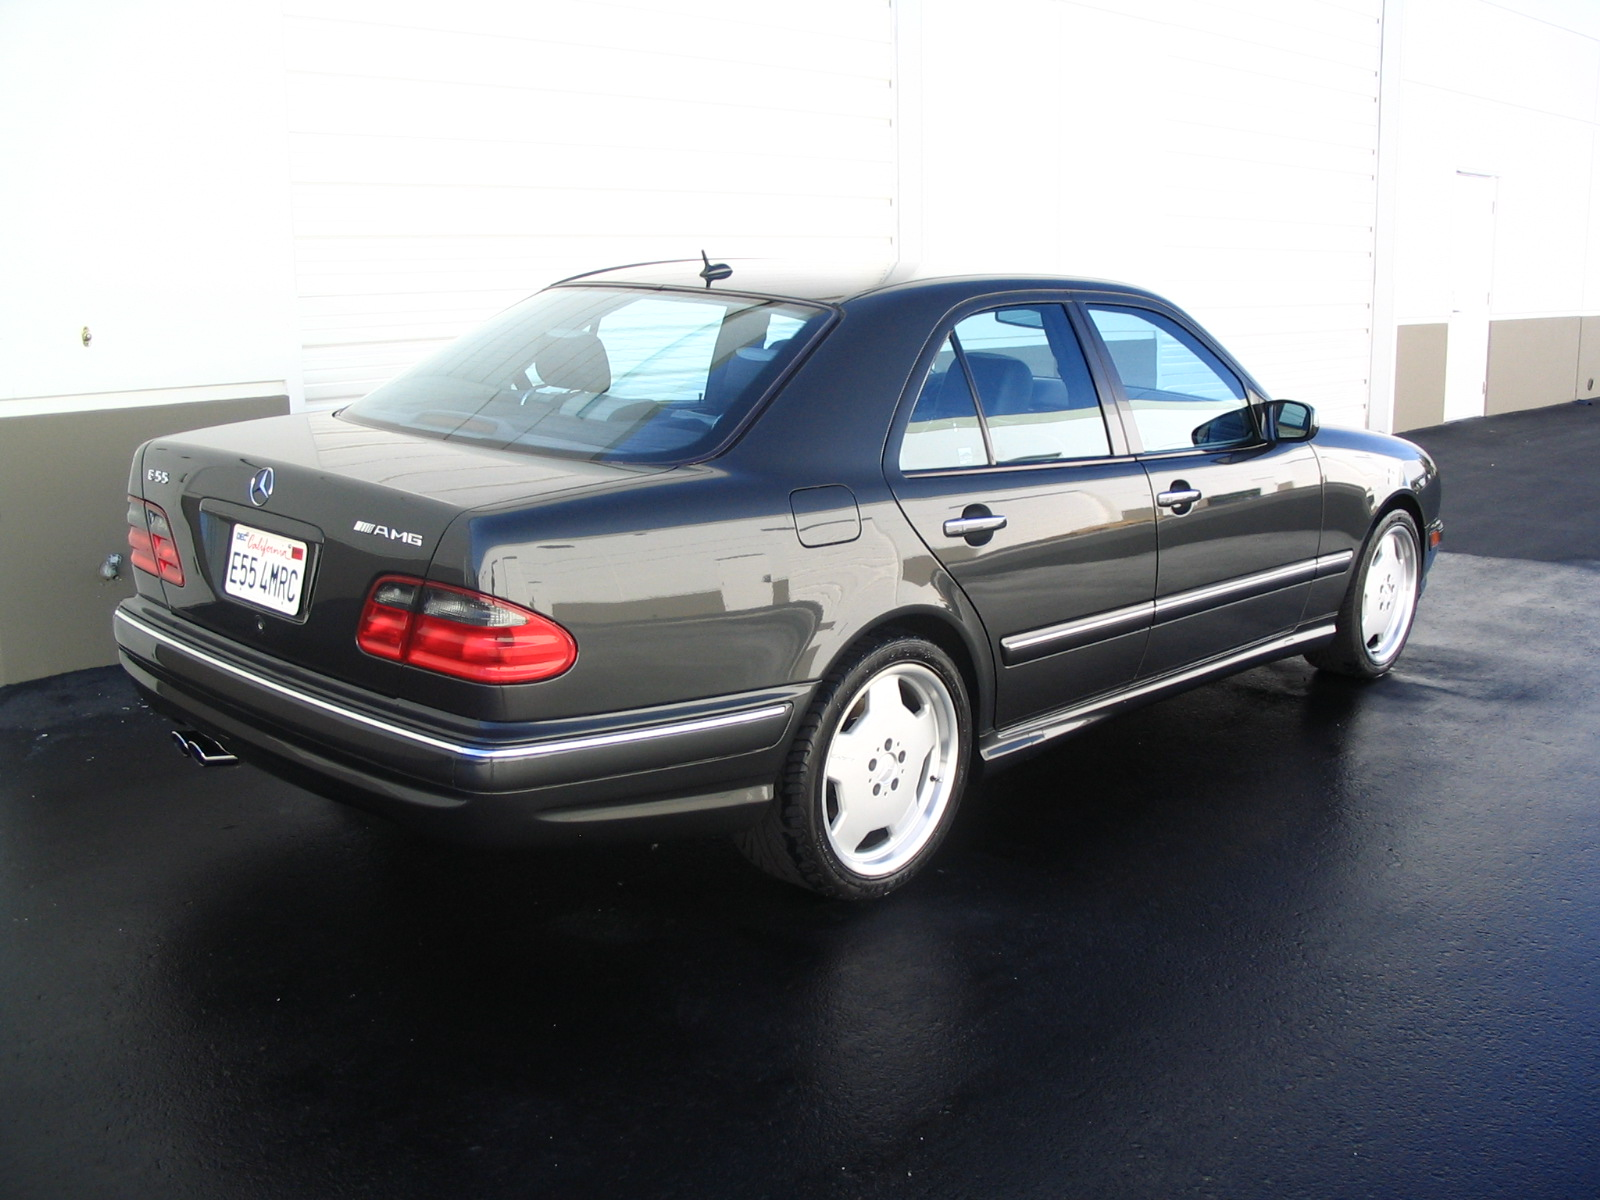 117927d1172207441-official-w210-e55-amg-pictures-sticky-e55amg2000003 Interesting Info About 2001 E55 Amg with Terrific Images Cars Review